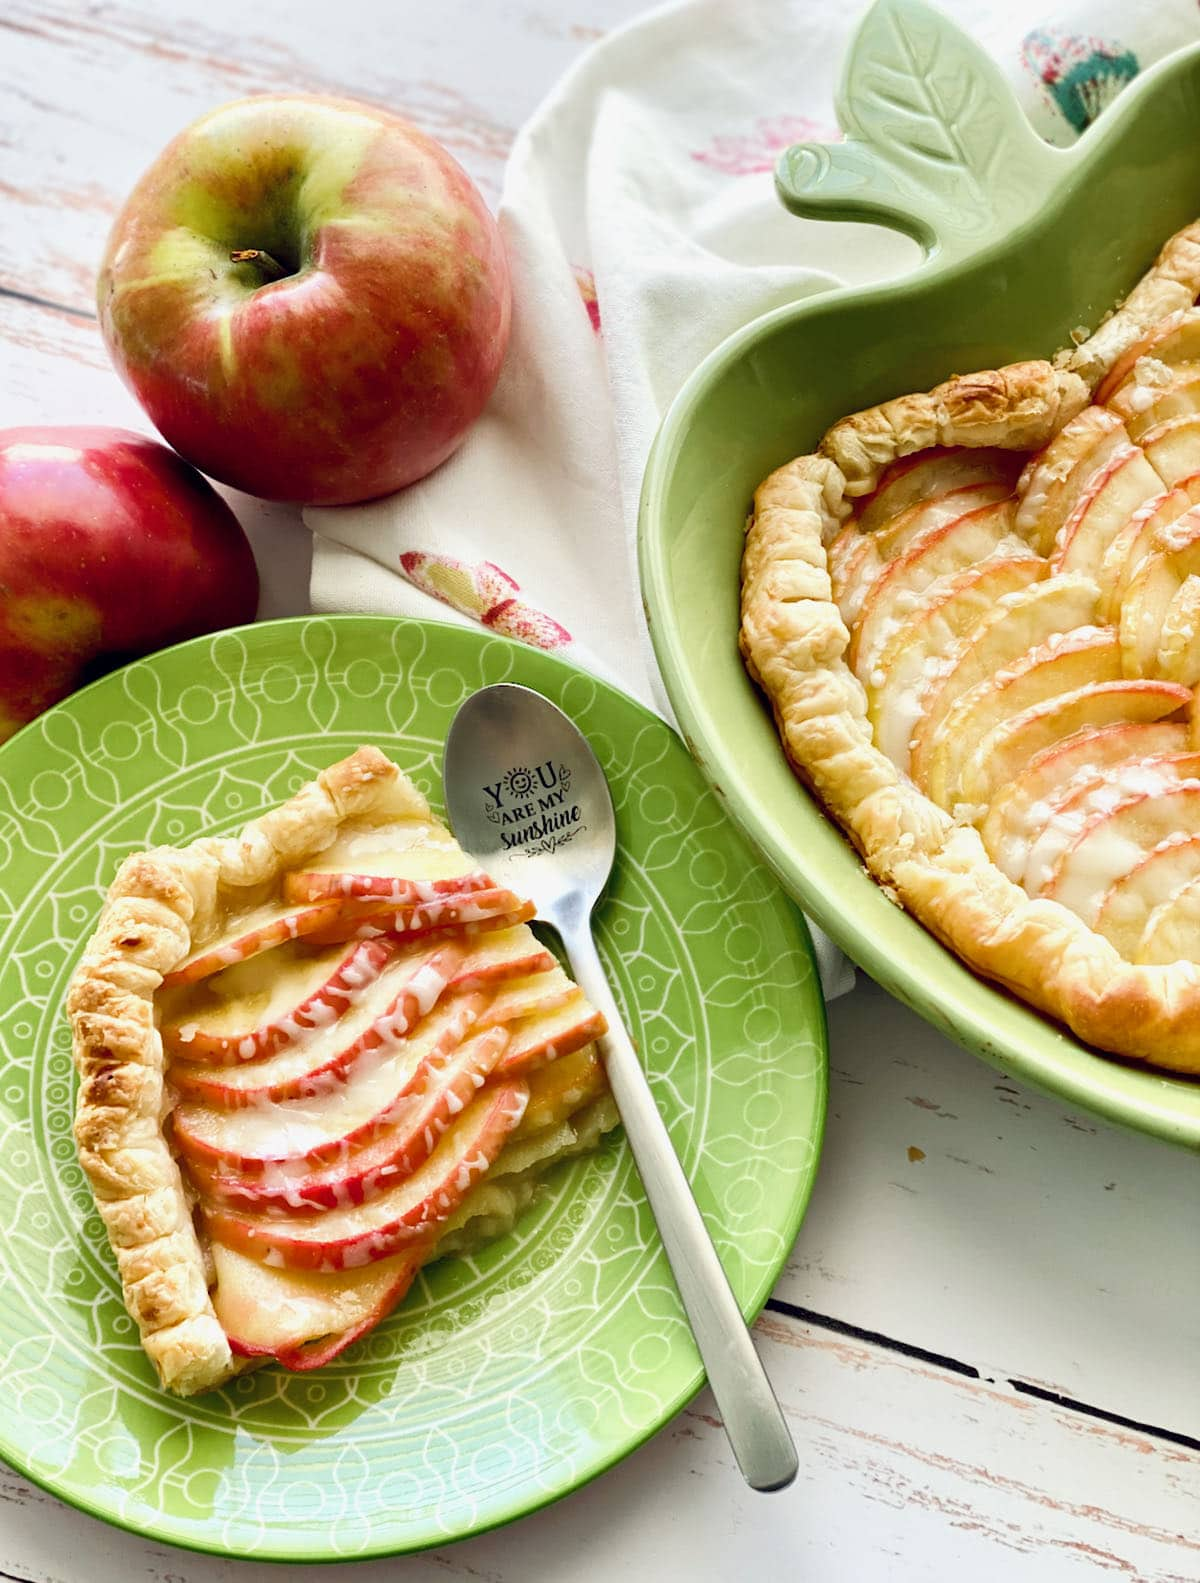 a slice of puff pastry apple tart on a green plate with apples in the background.